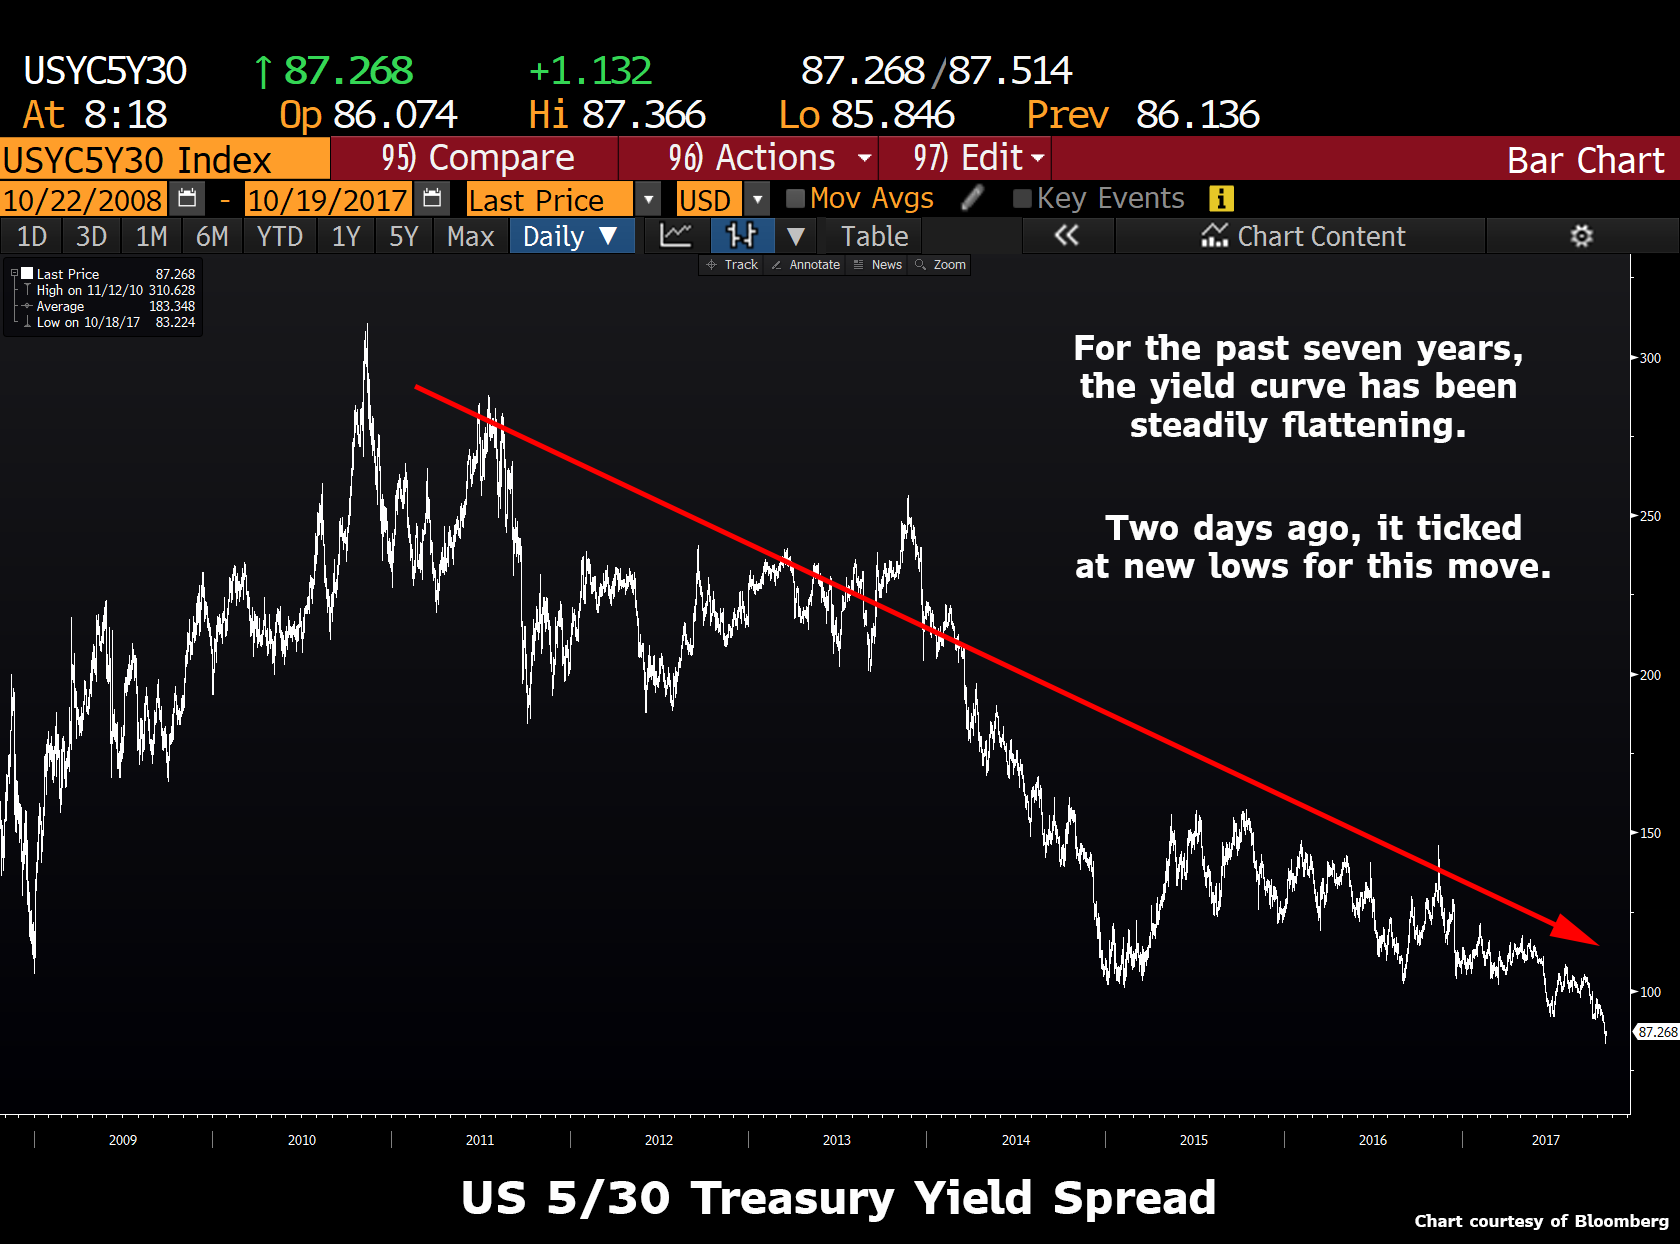 US Treasuries Yield Spread, 2009 - 2017